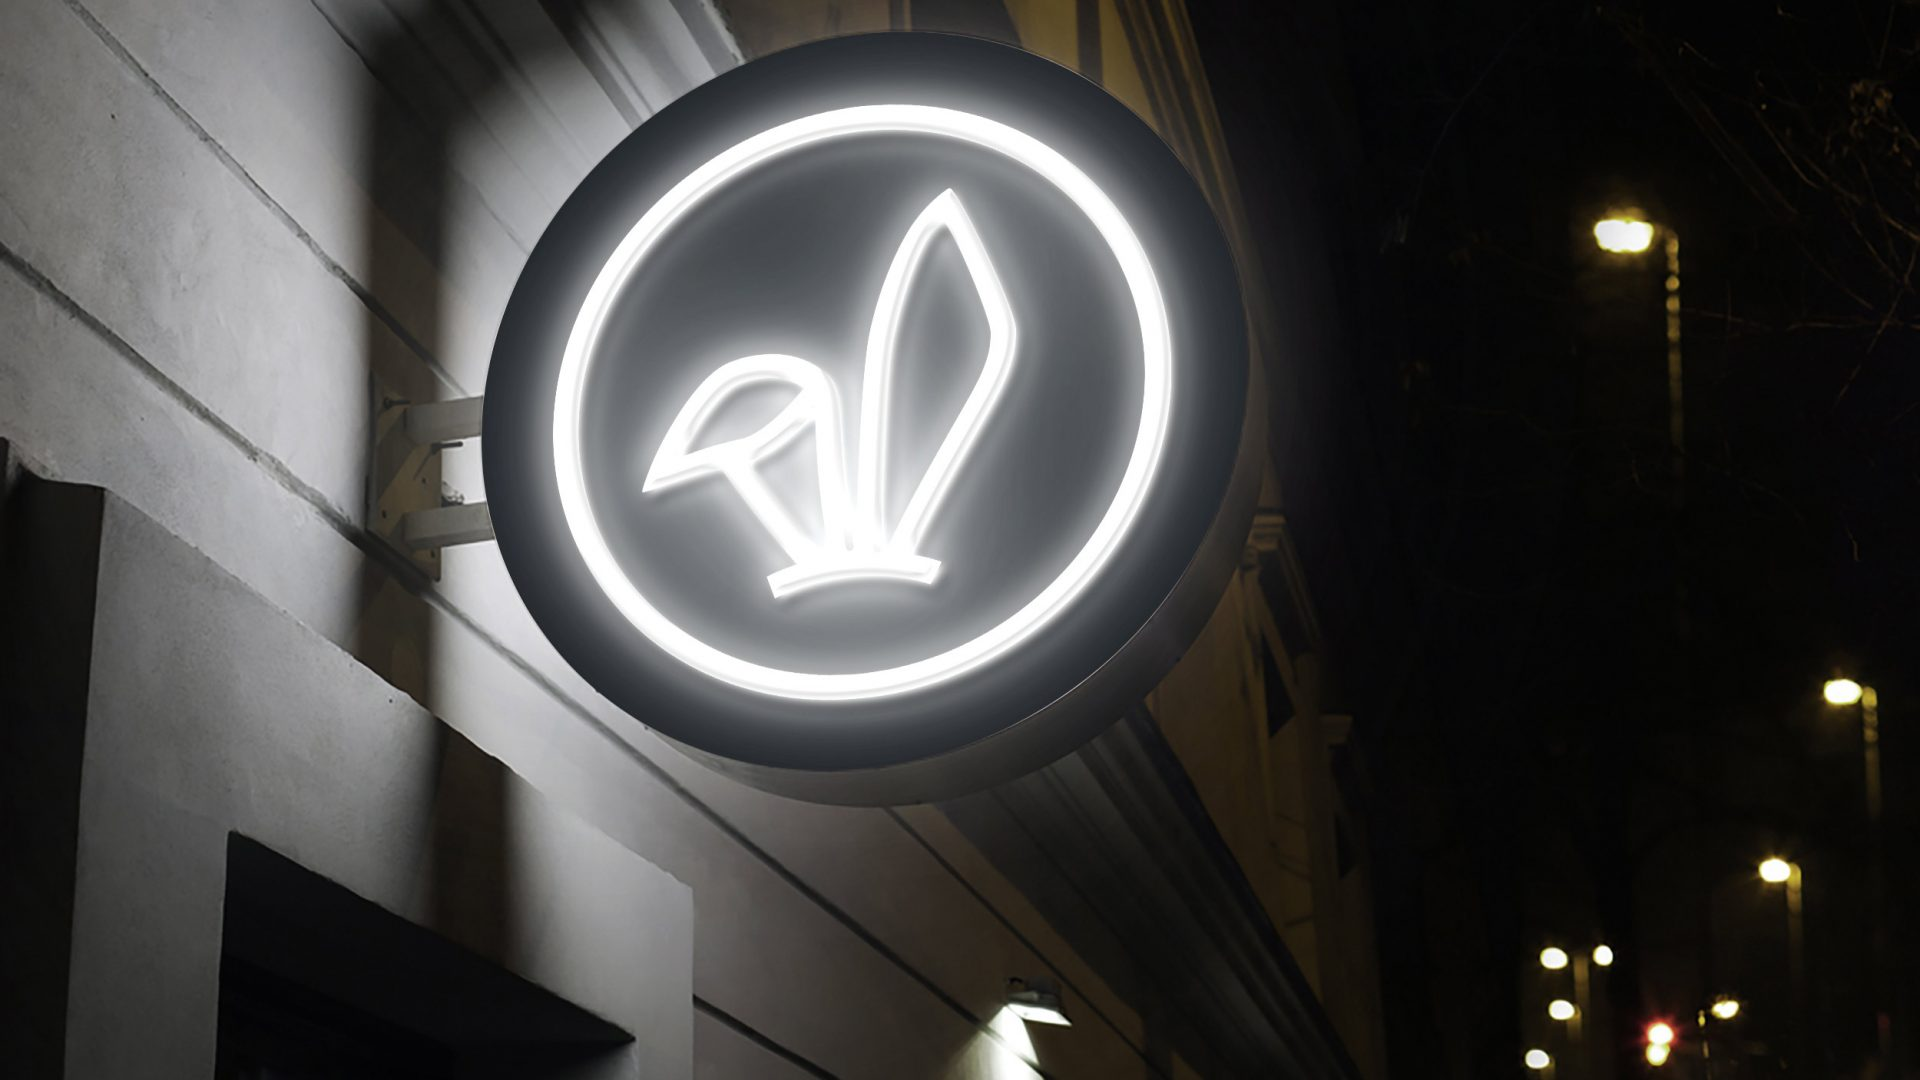 Crate47 Branding forThe Bunny Boba tea store – Outdoor signage with neon bunny ears marque